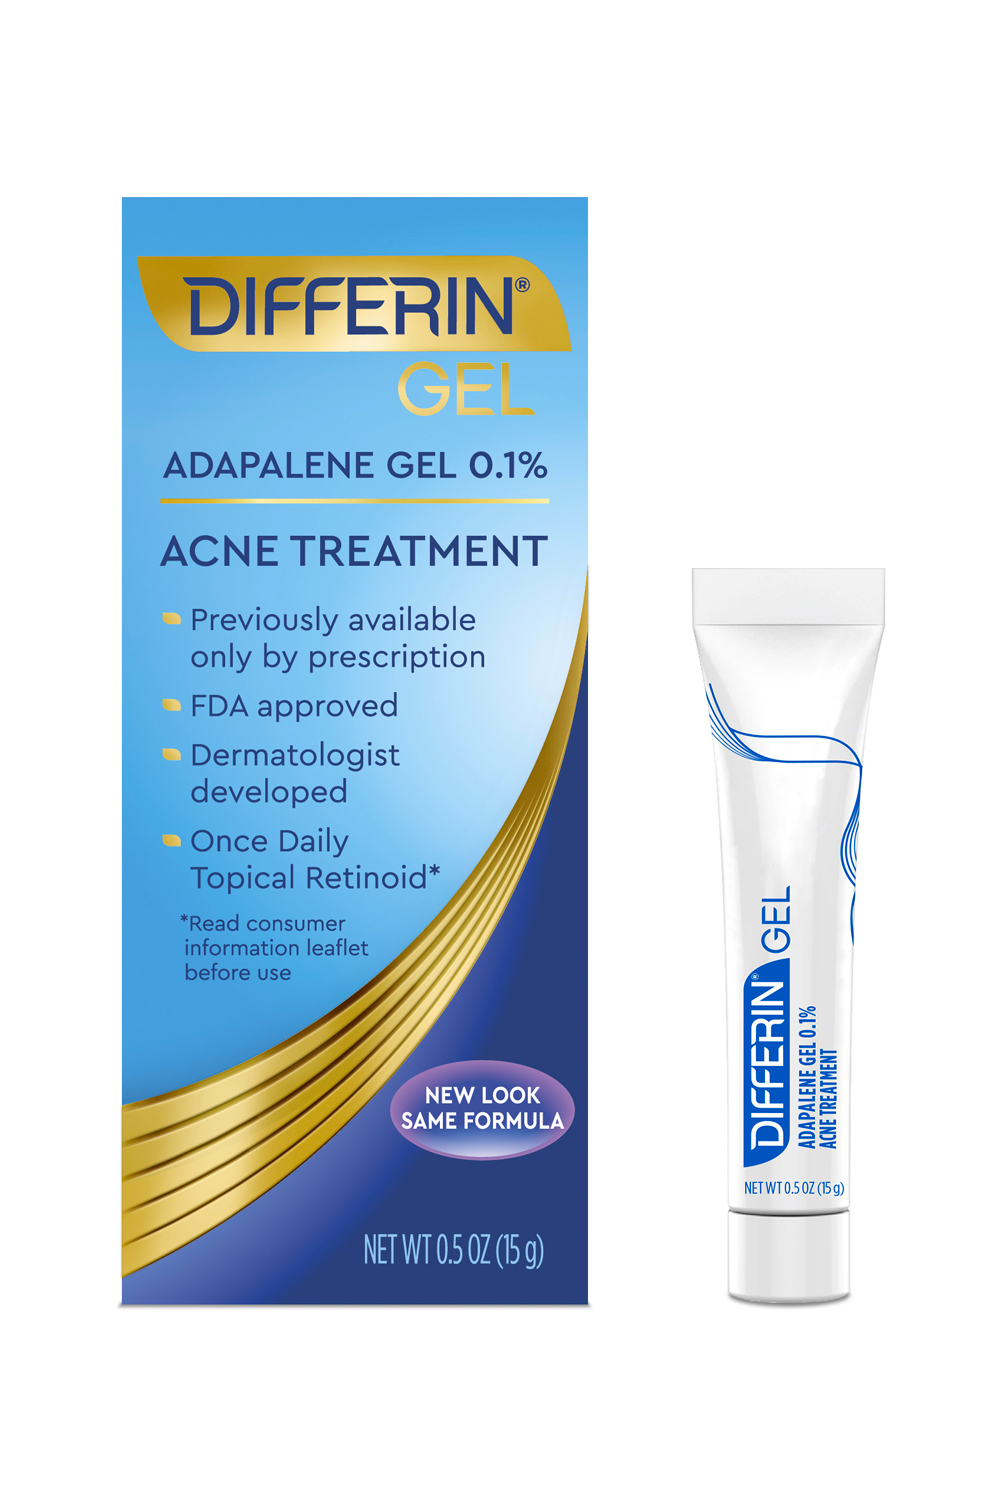 15 Best Acne Treatments Of 2020 For Blackheads Whiteheads And Cysts